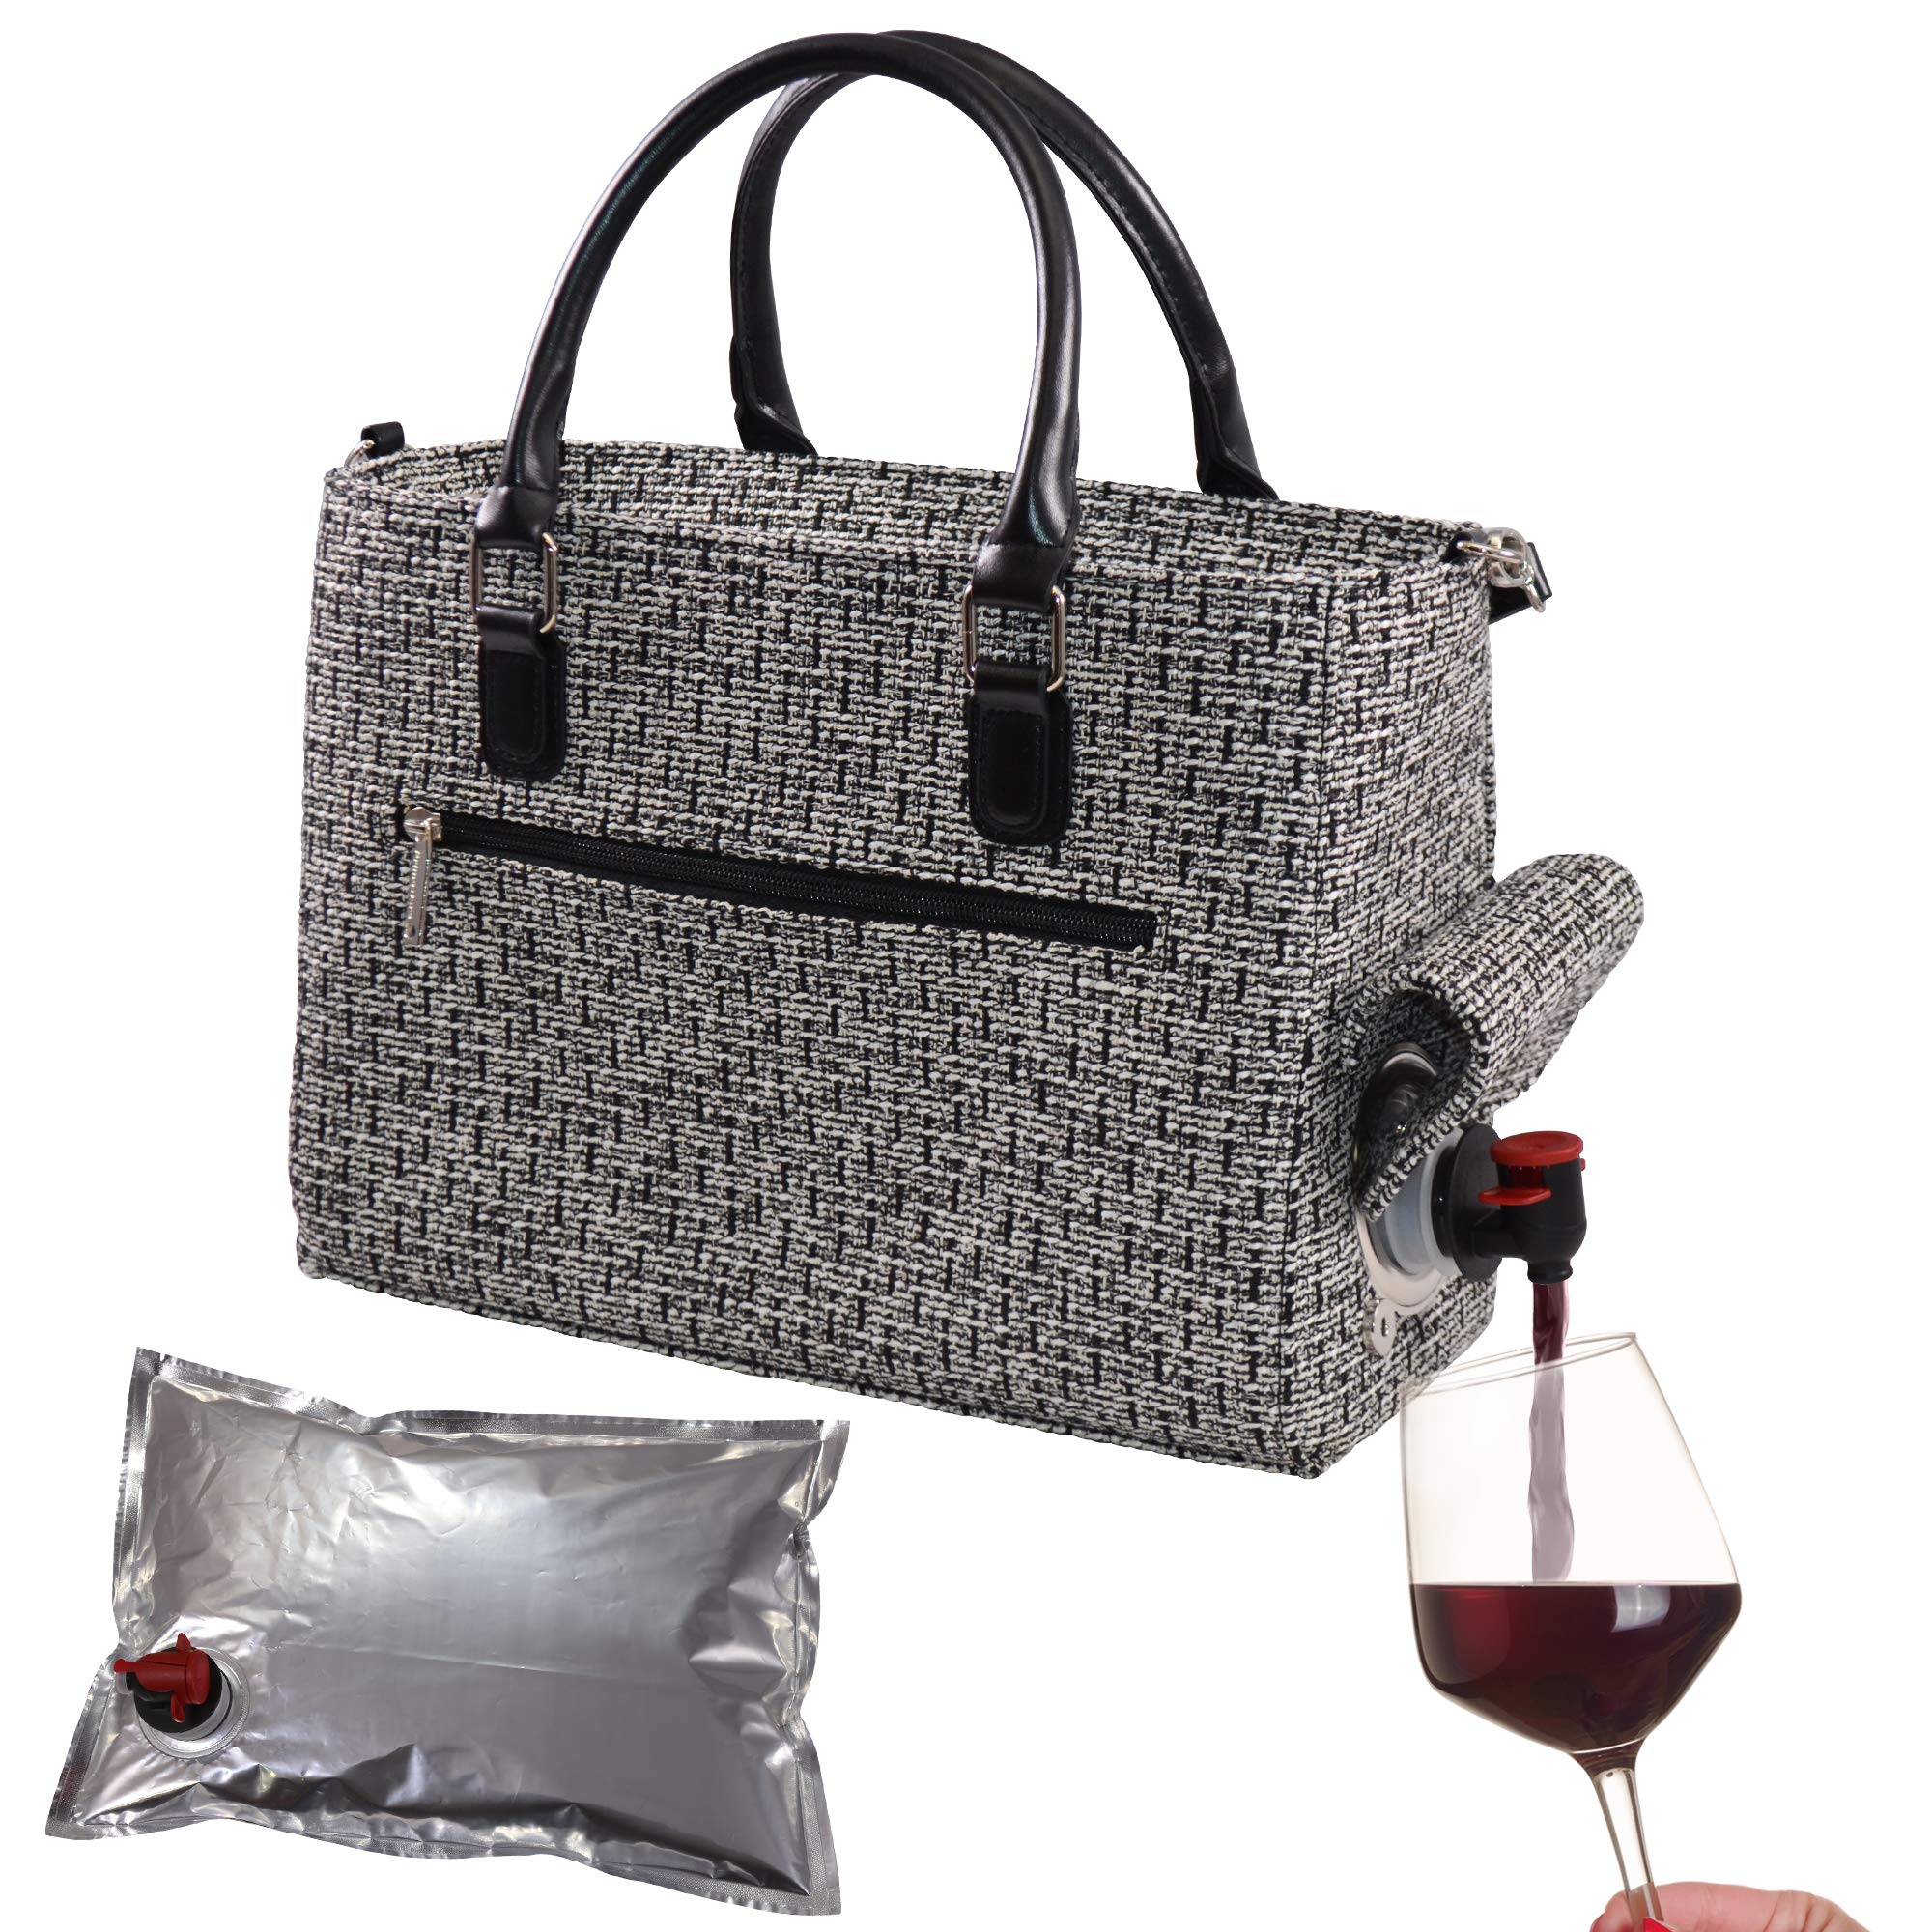 Primeware Insulated Drink Purse w/ 3L Bladder Bag | Thermal Hot and Cold Storage | Portable Drinking Dispenser for Wine, Cocktails, Beer, Alcohol | PU Leather Finish (Black Tweed) by Primeware (Image #1)